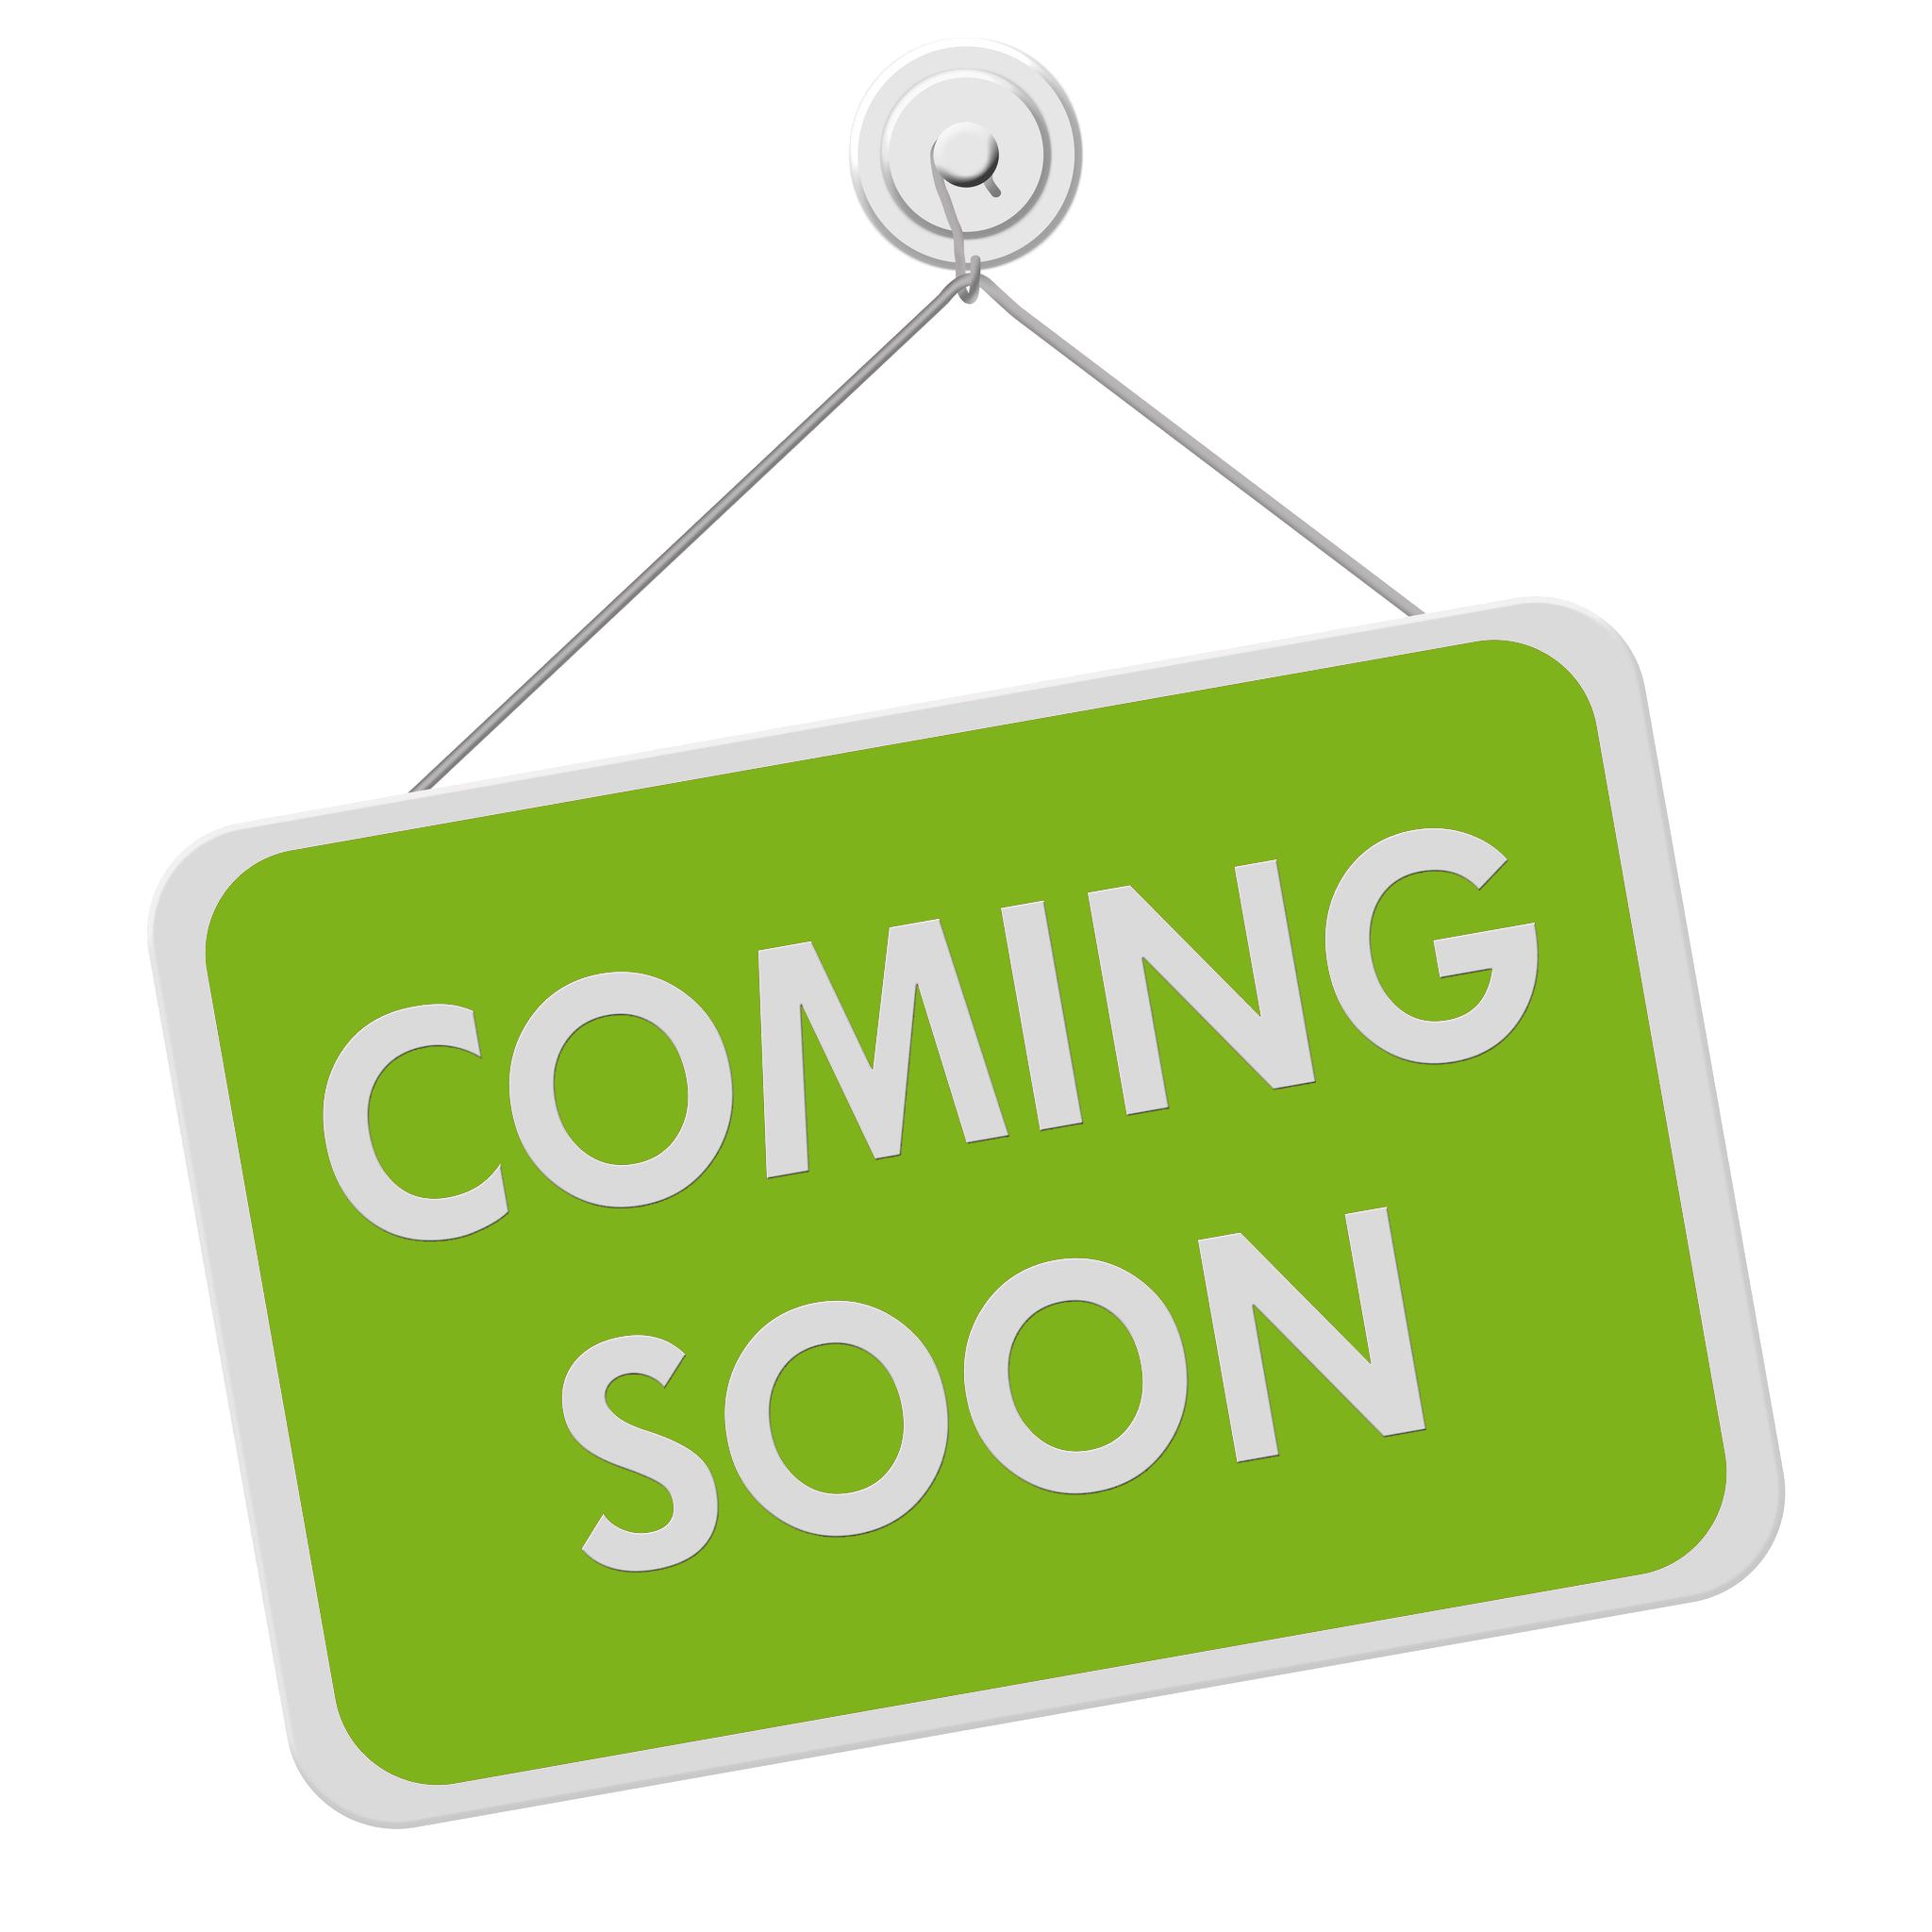 Coming soon sign png. San francisco recreation and